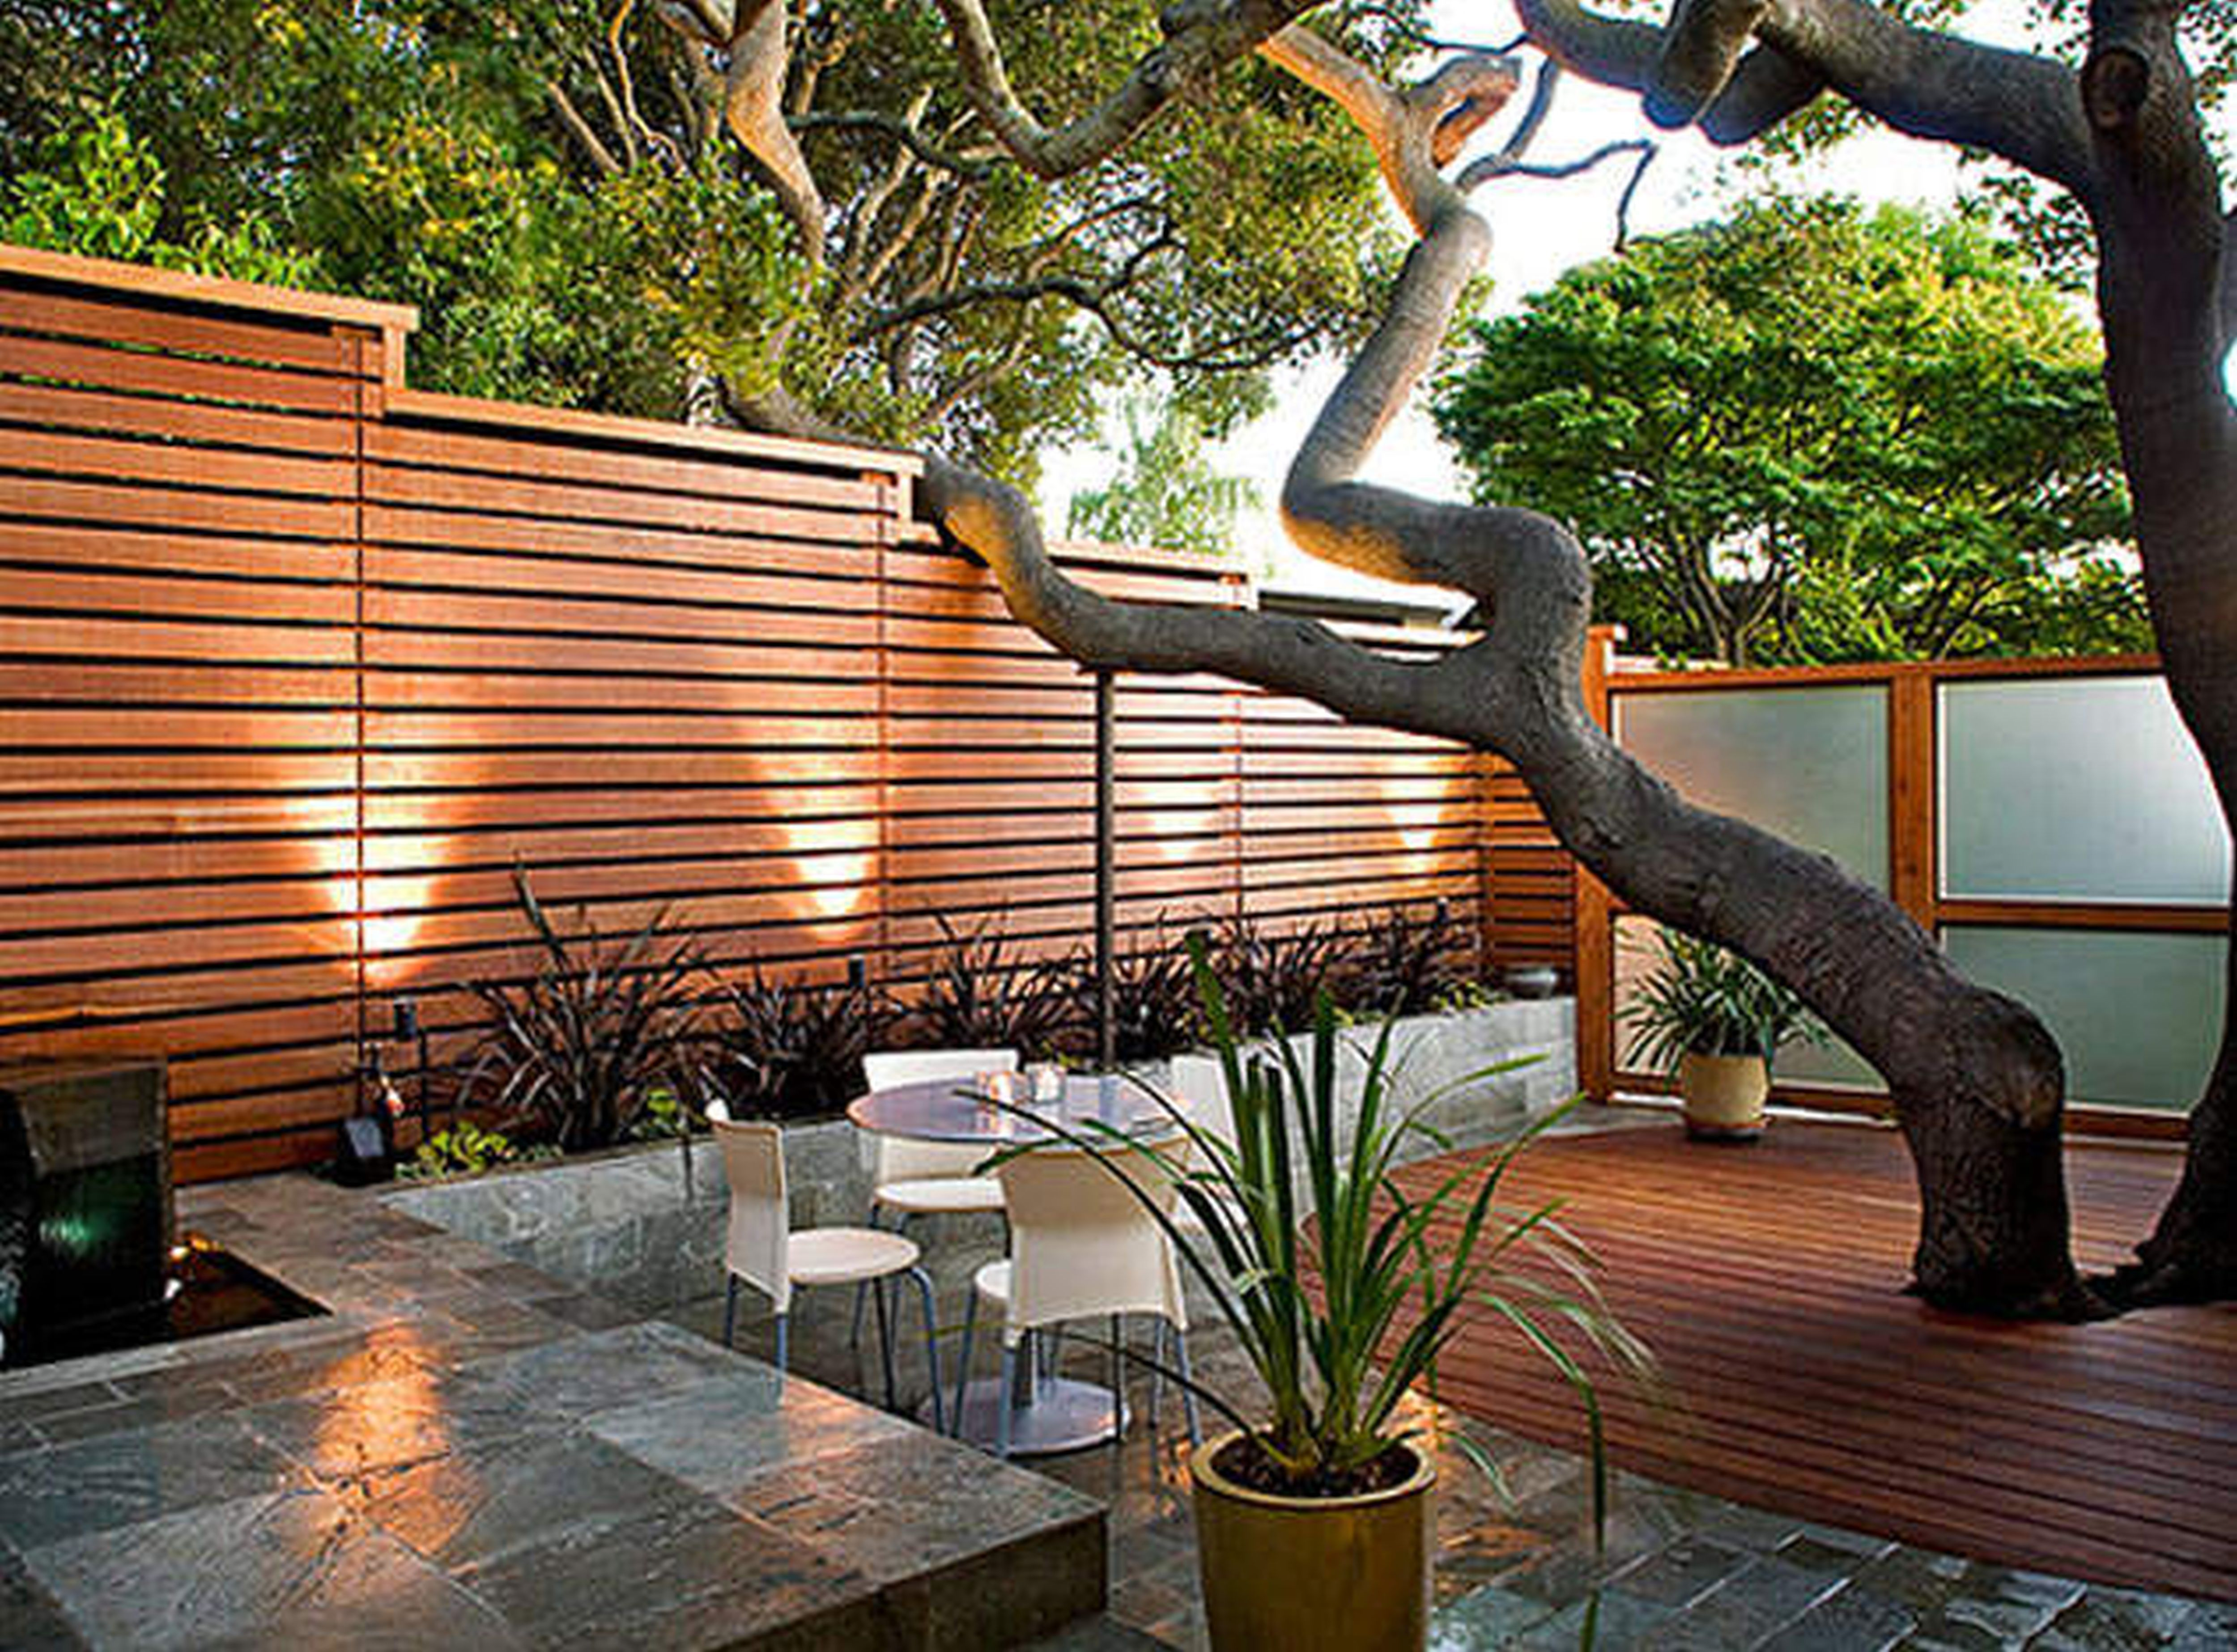 Small garden landscaping ideas south africa yard ideas pinterest small garden landscaping ideas south africa workwithnaturefo